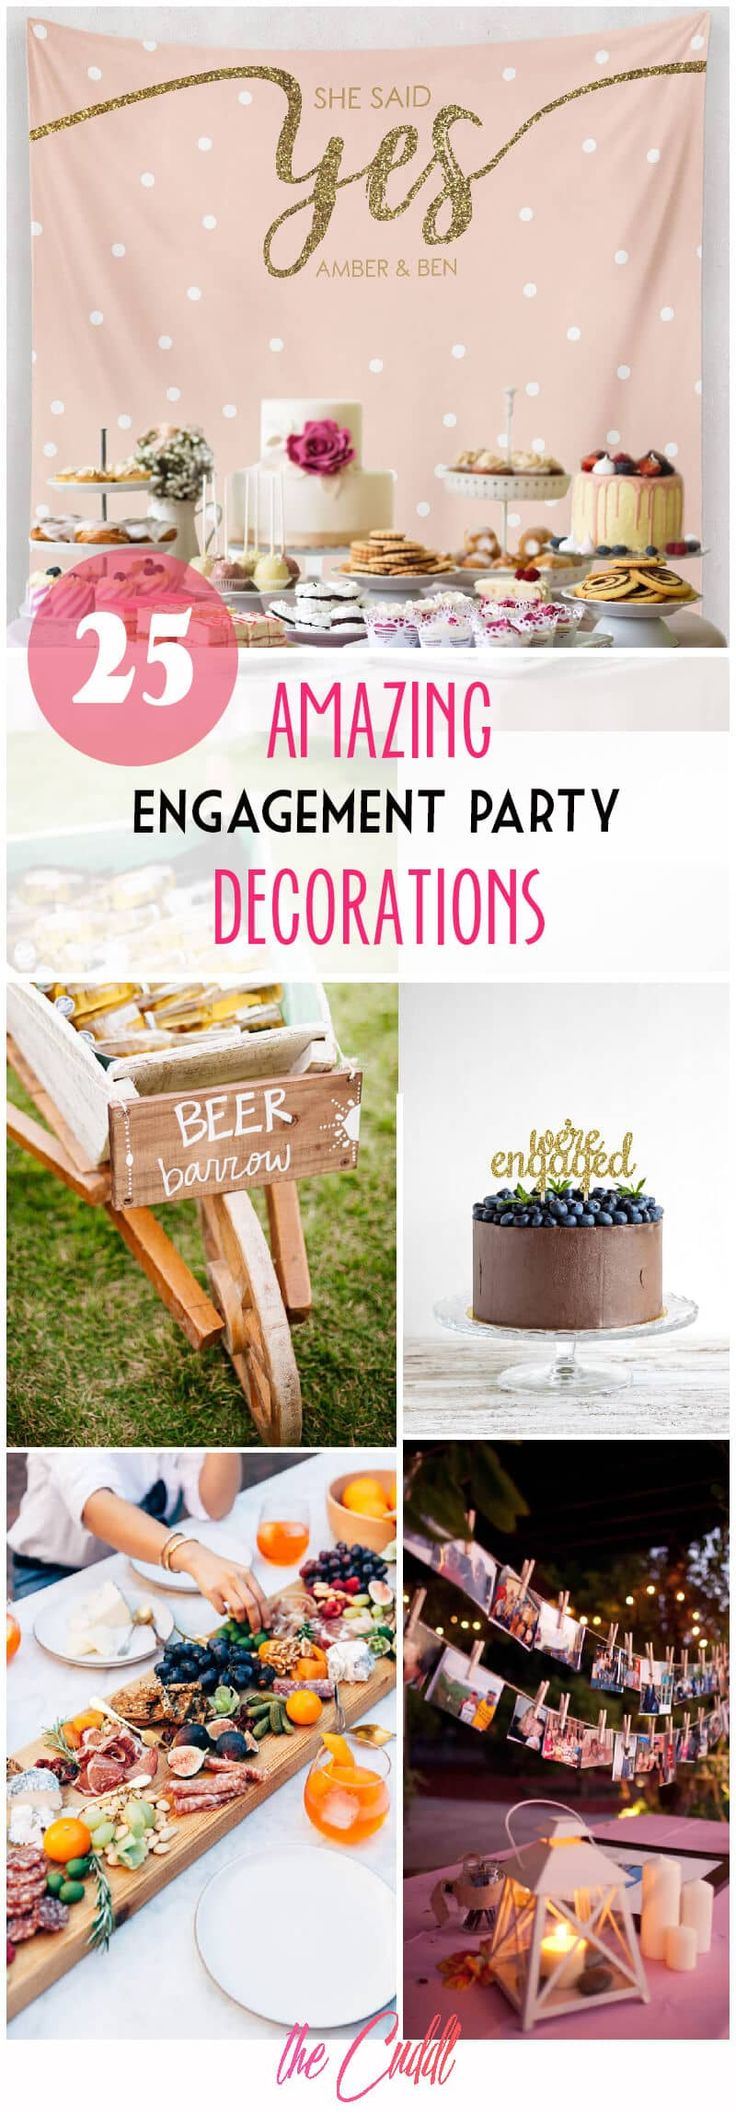 25 Amazing DIY Engagement Party Decoration Ideas for 2019